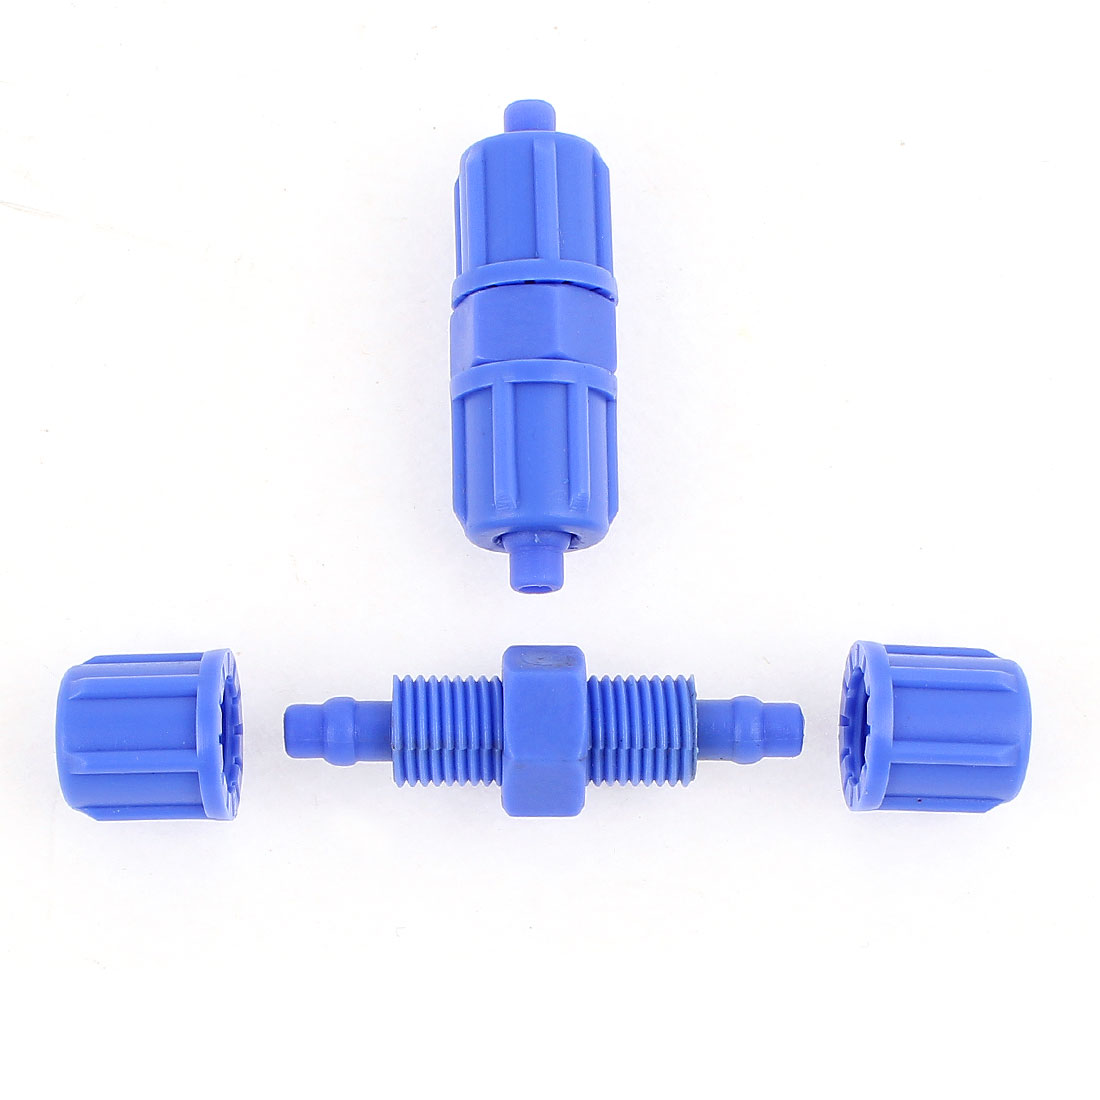 2Pcs 6mm x 6mm Pneumatic Quick Fitting Air Hose Pipe Push In Joint Connector